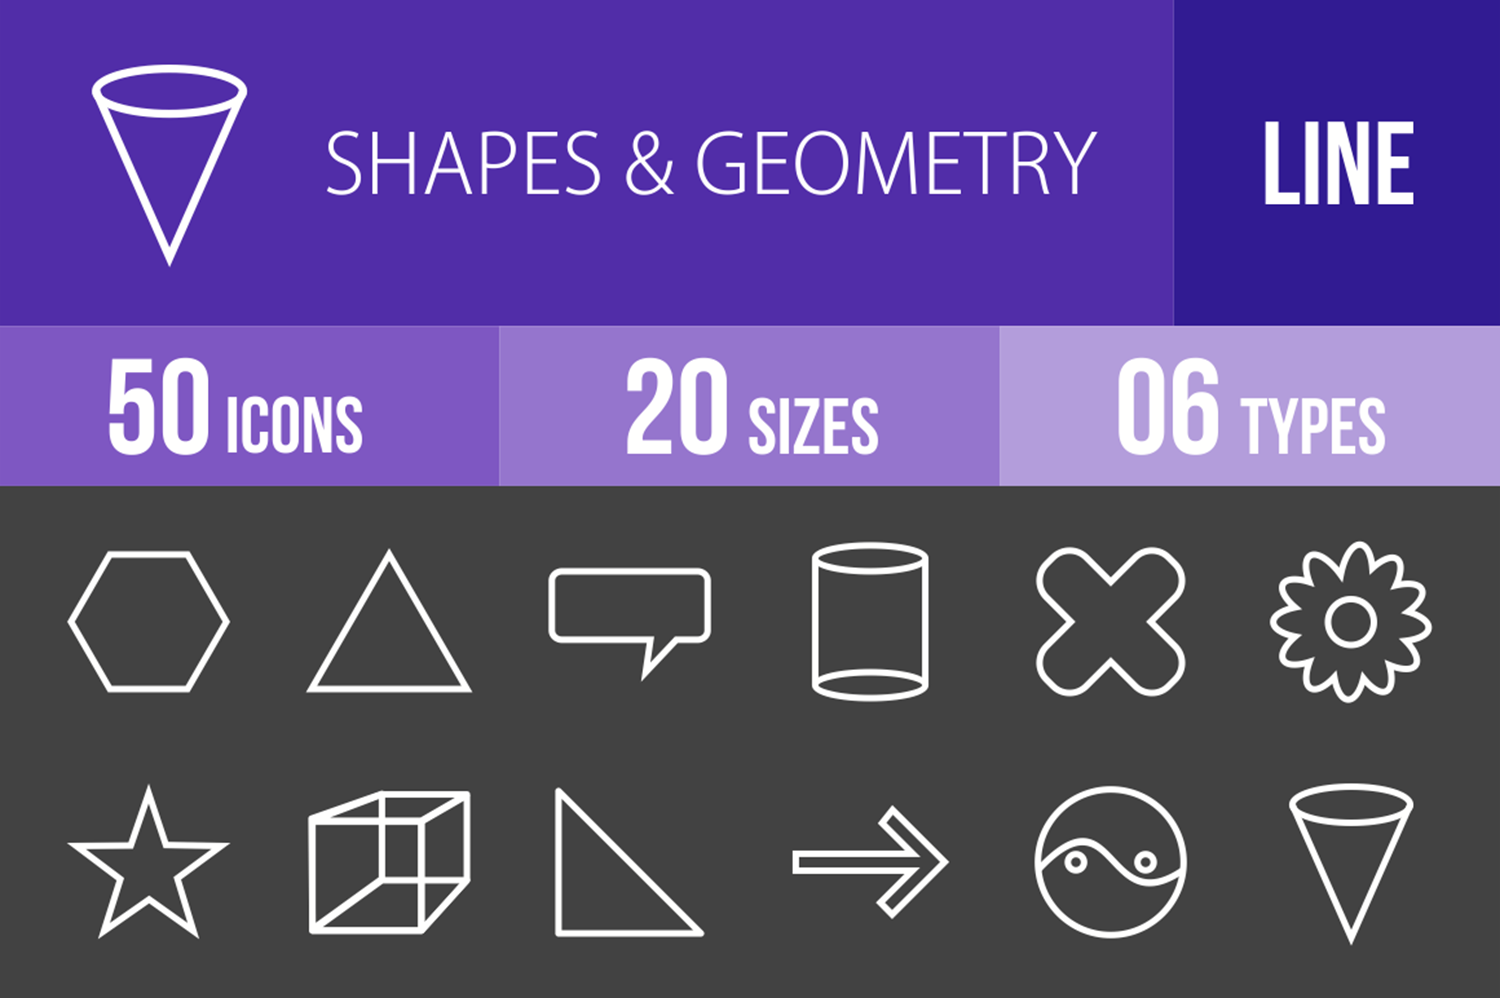 50 Shapes & Geometry Line Inverted Icons example image 1